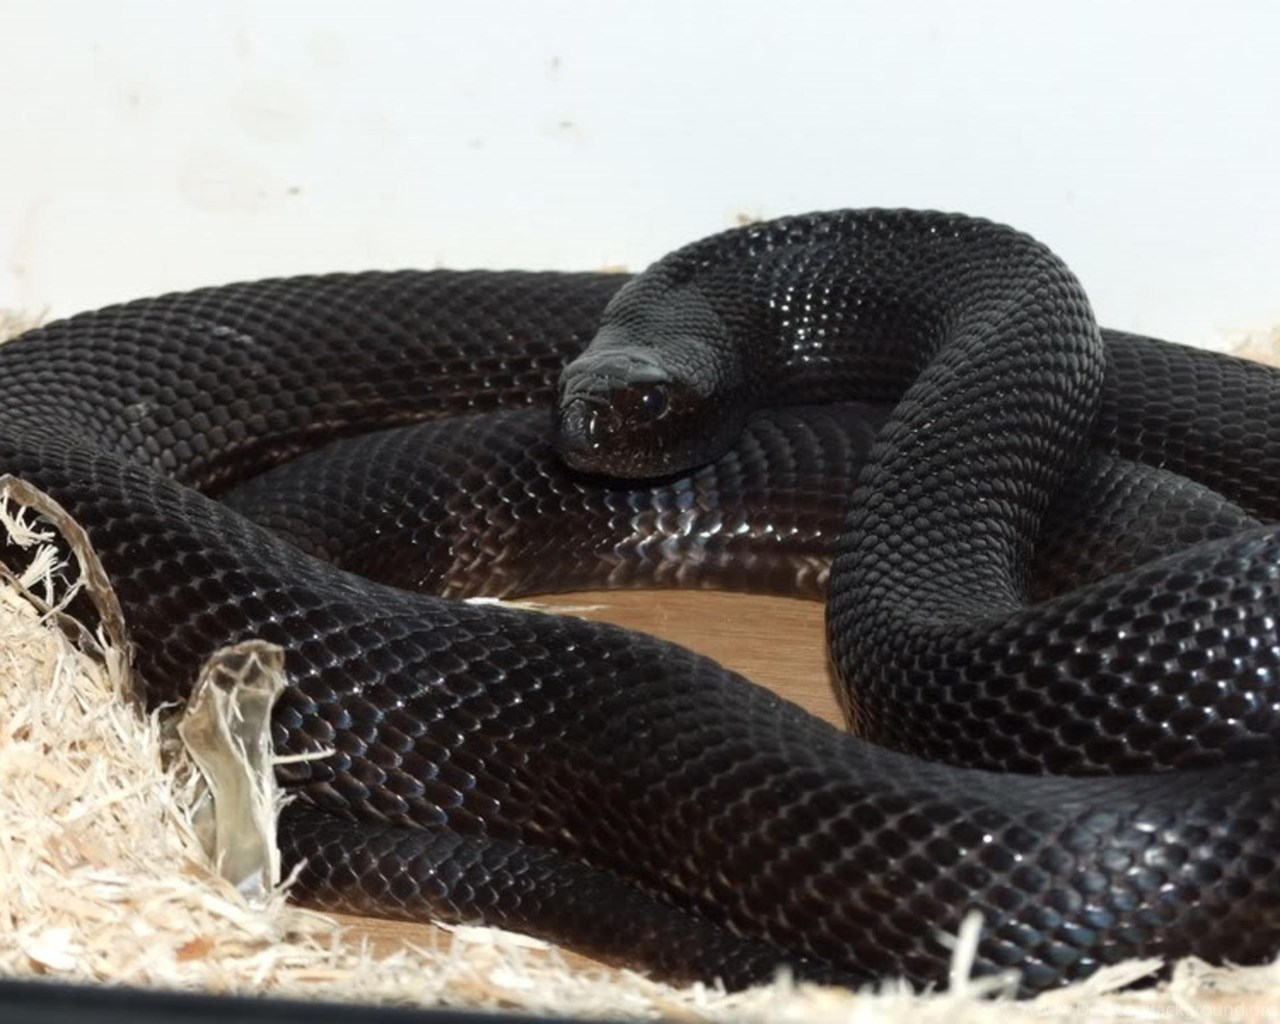 Black Mamba Snake Wallpapers New Wallpapers New Wallpapers Desktop Background